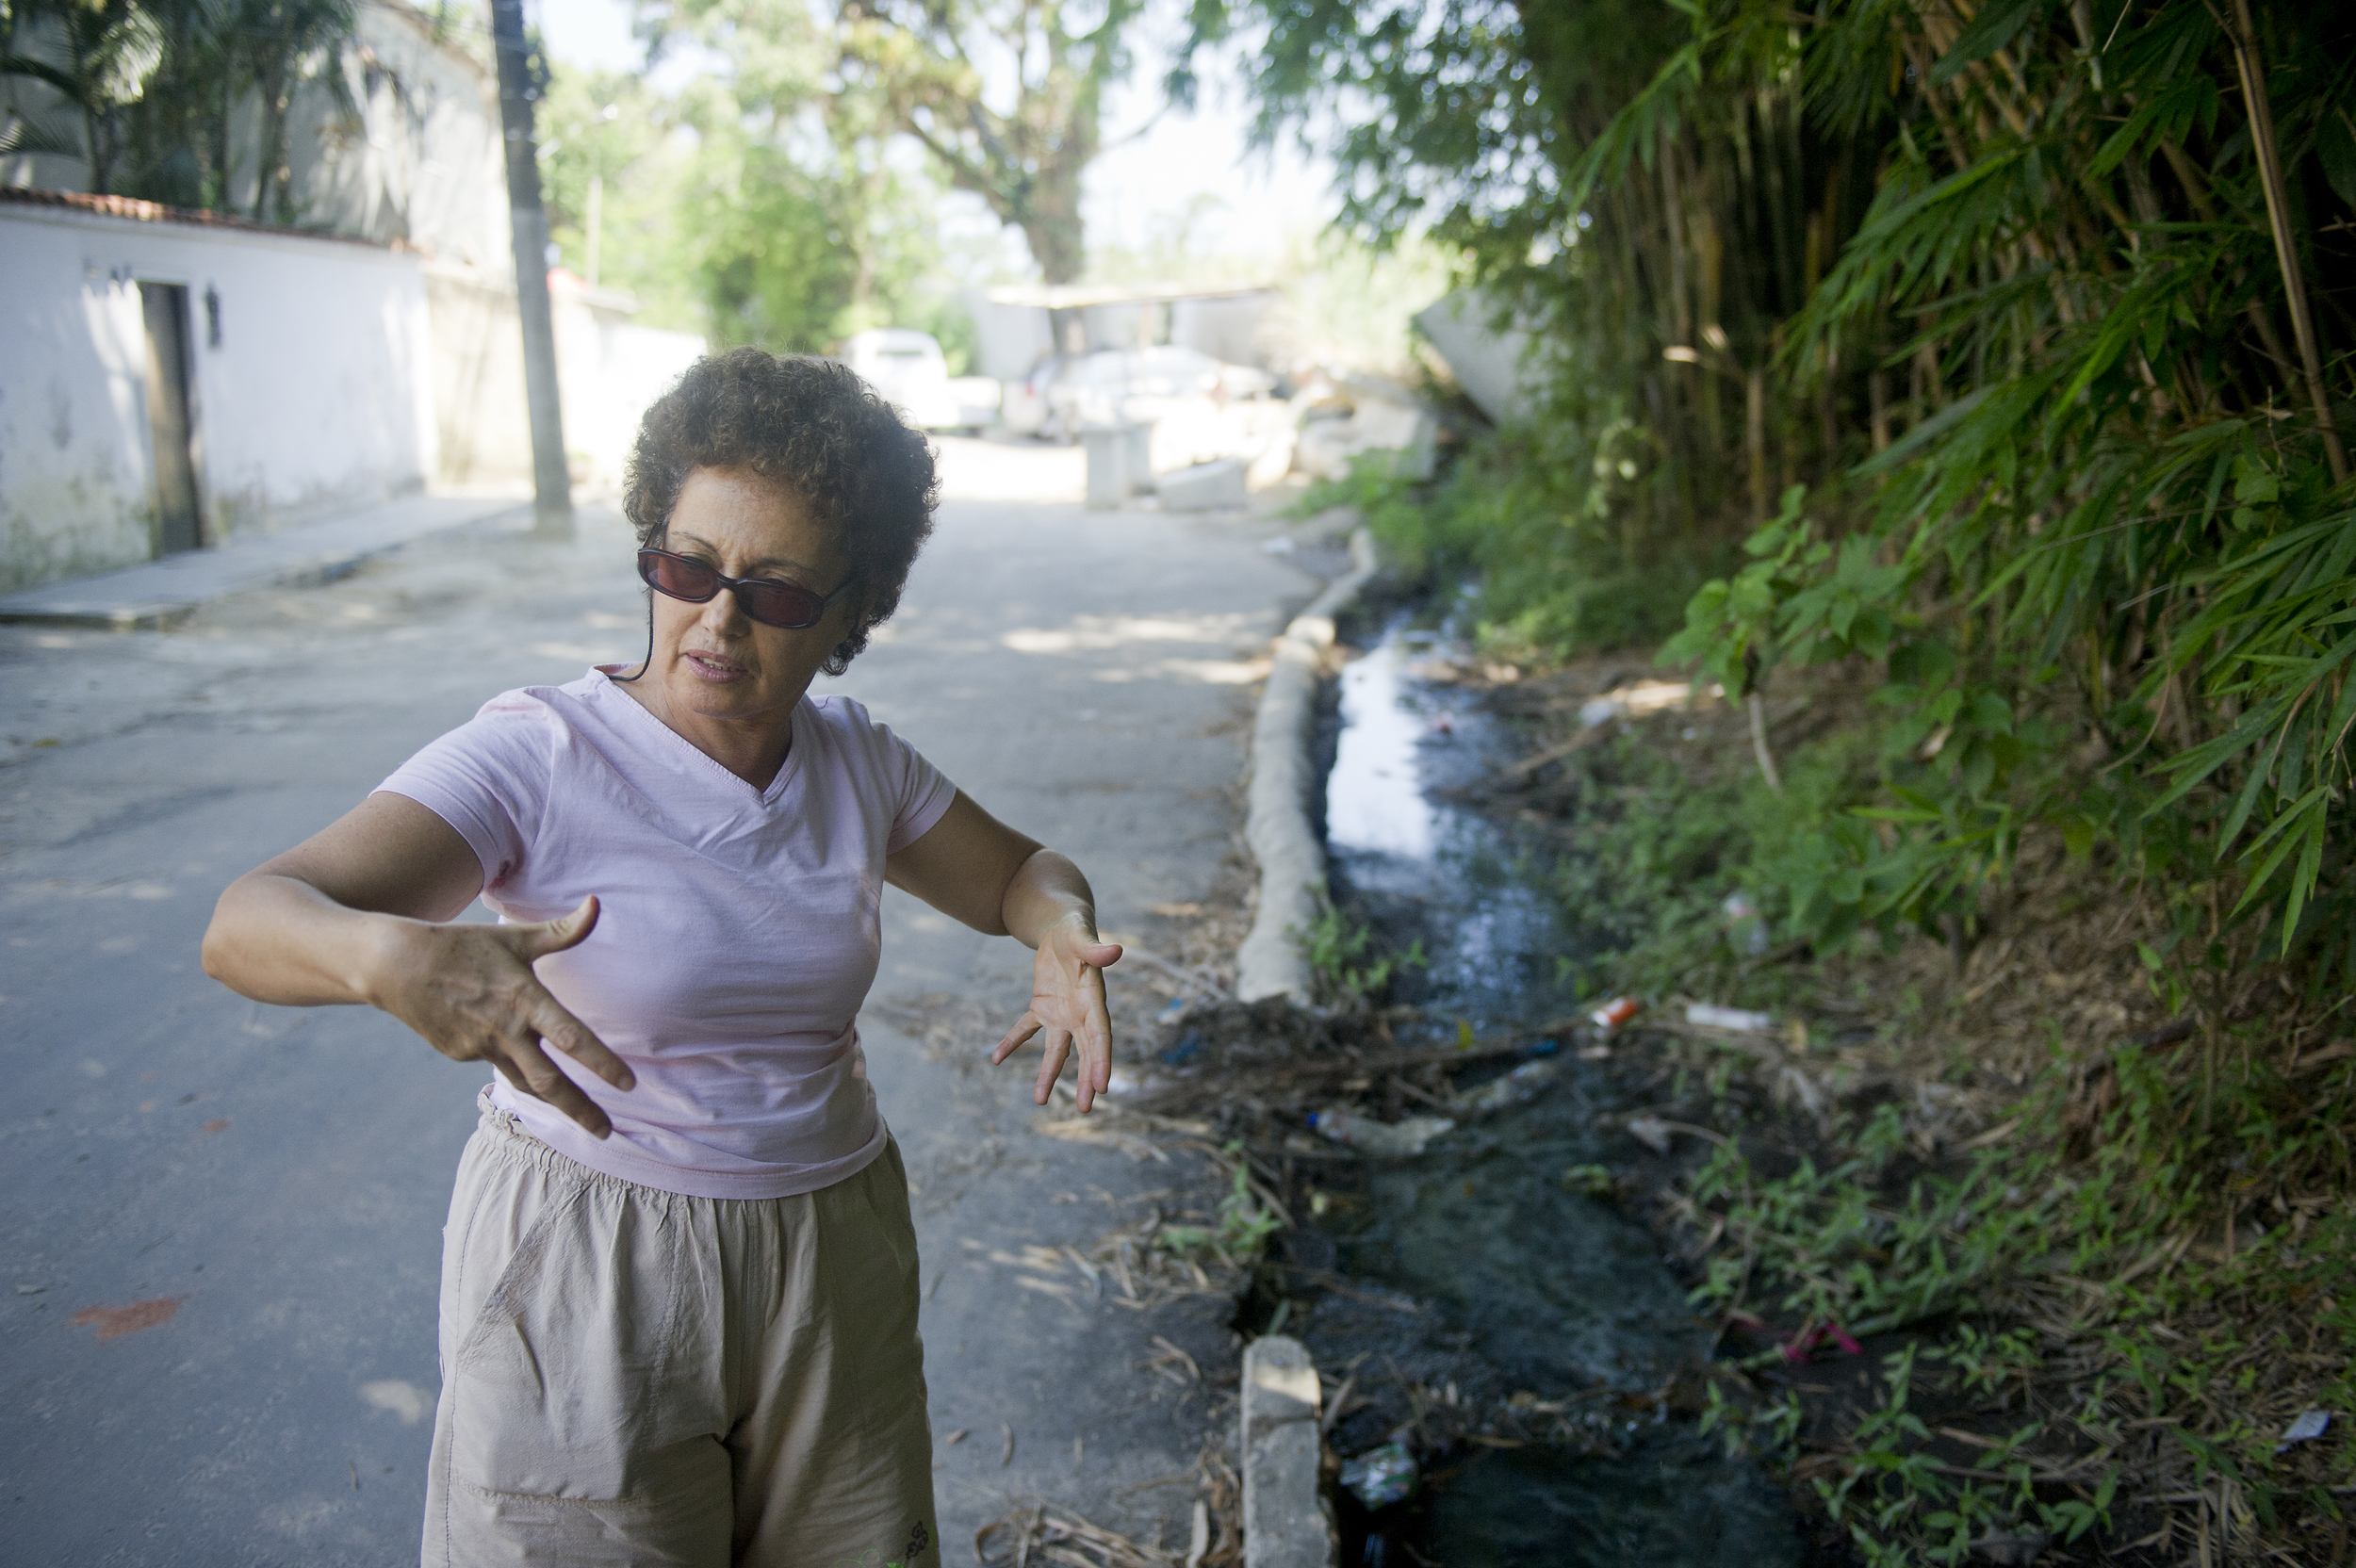 Brito describes the differences between this town and hers. She stands at the edge of an open sewer that runs through the town next to the area where the government is trying to relocate Vila Autodromo.